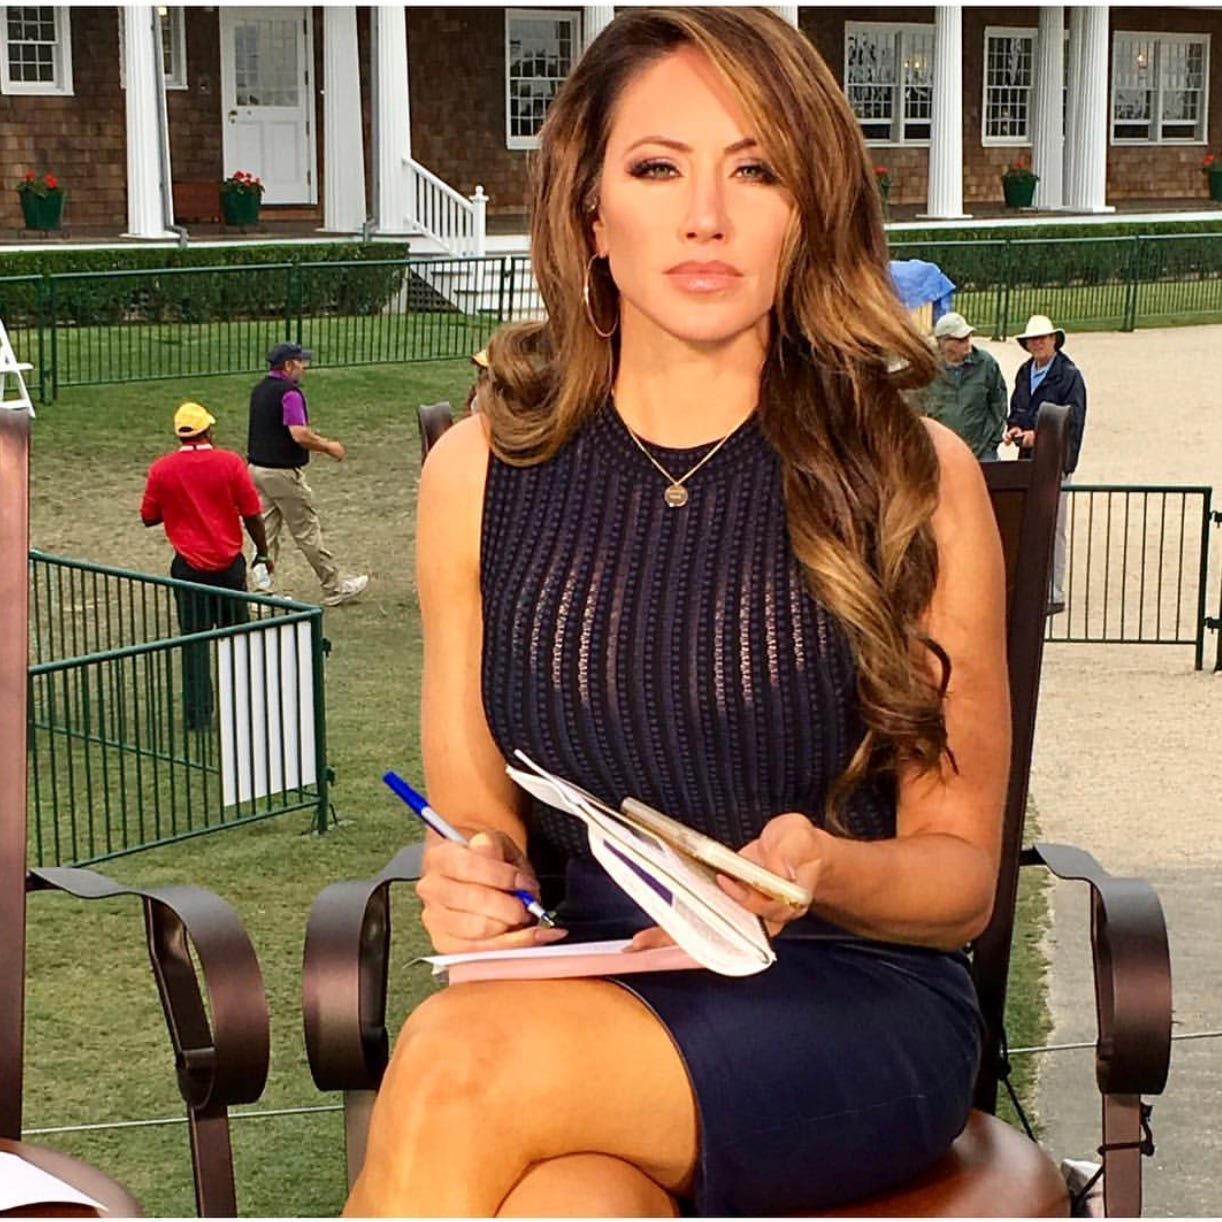 Q&A: Fox Sports personality Holly Sonders talks about her career path, athletic background